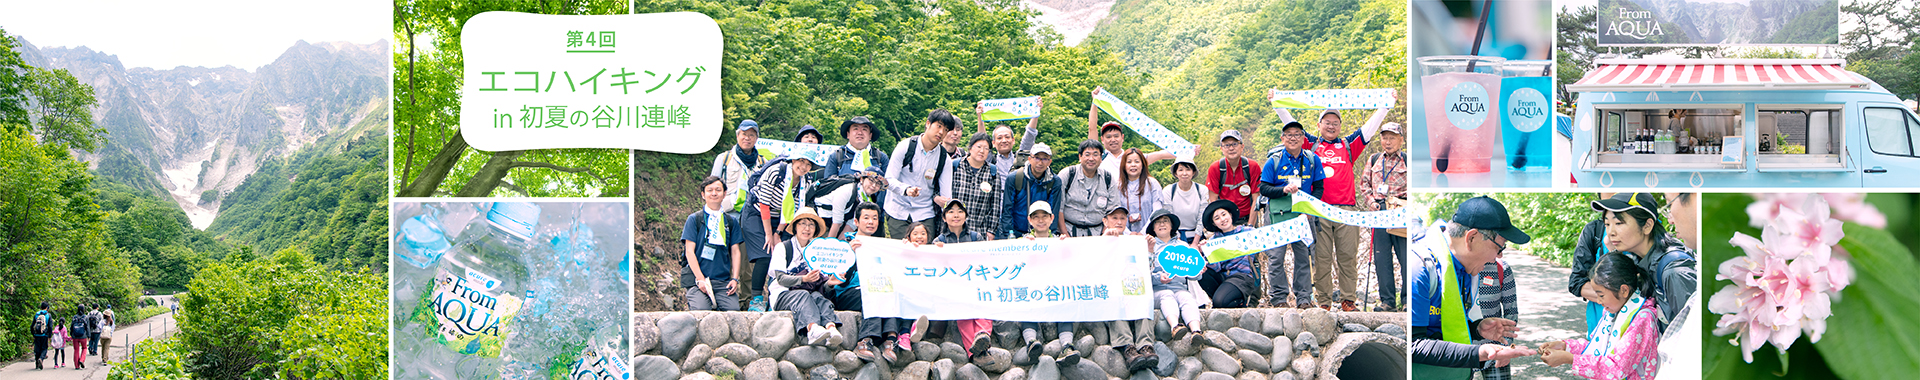 acure members day 第4回 エコハイキング in 初夏の谷川連峰